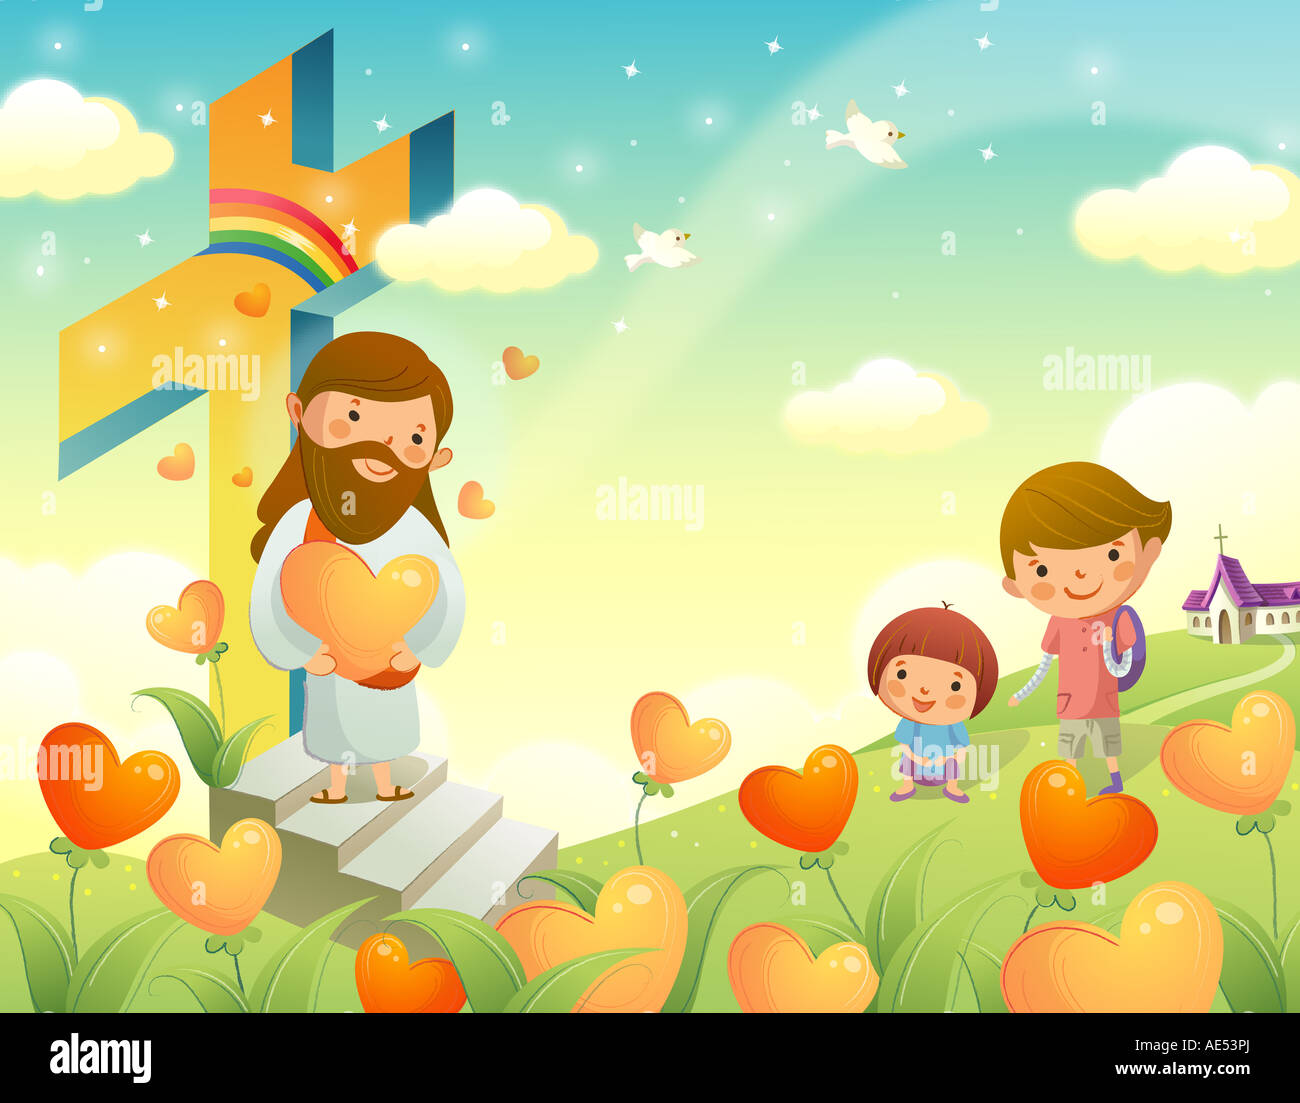 jesus christ holding a heart shape flower and standing with two